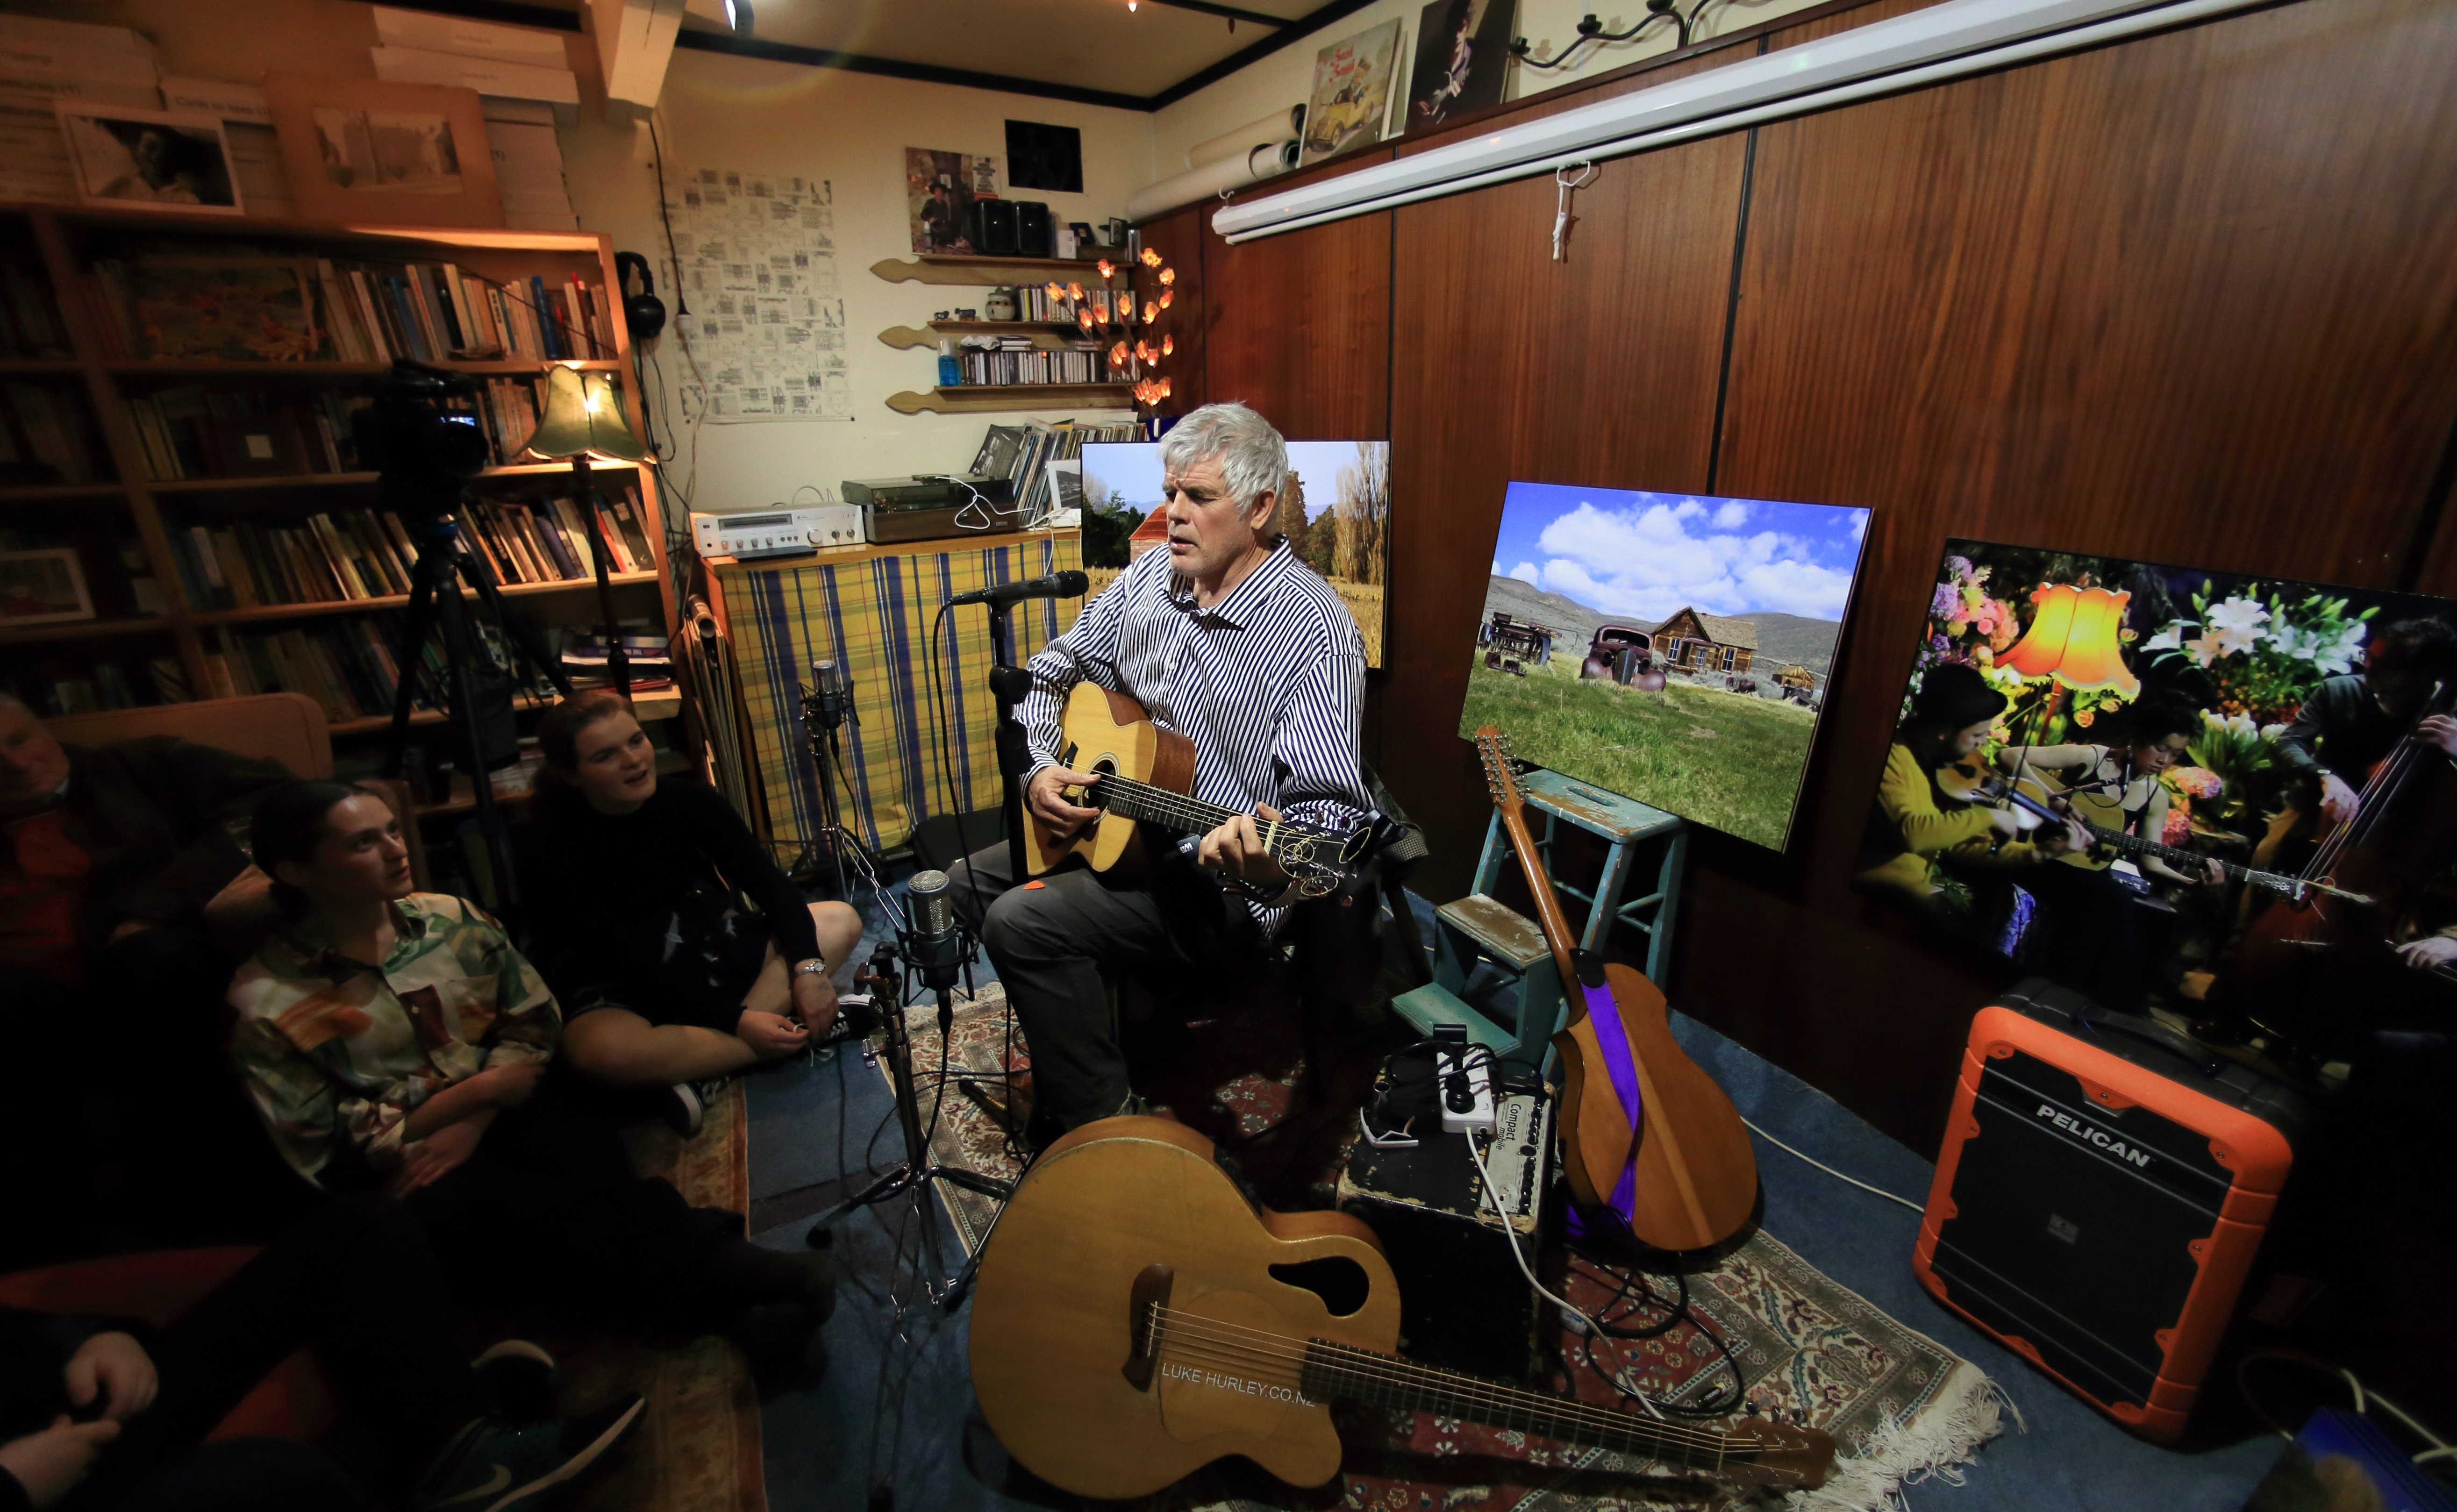 Luke Hurley plays a living room concert. Photo: Mark Thompson